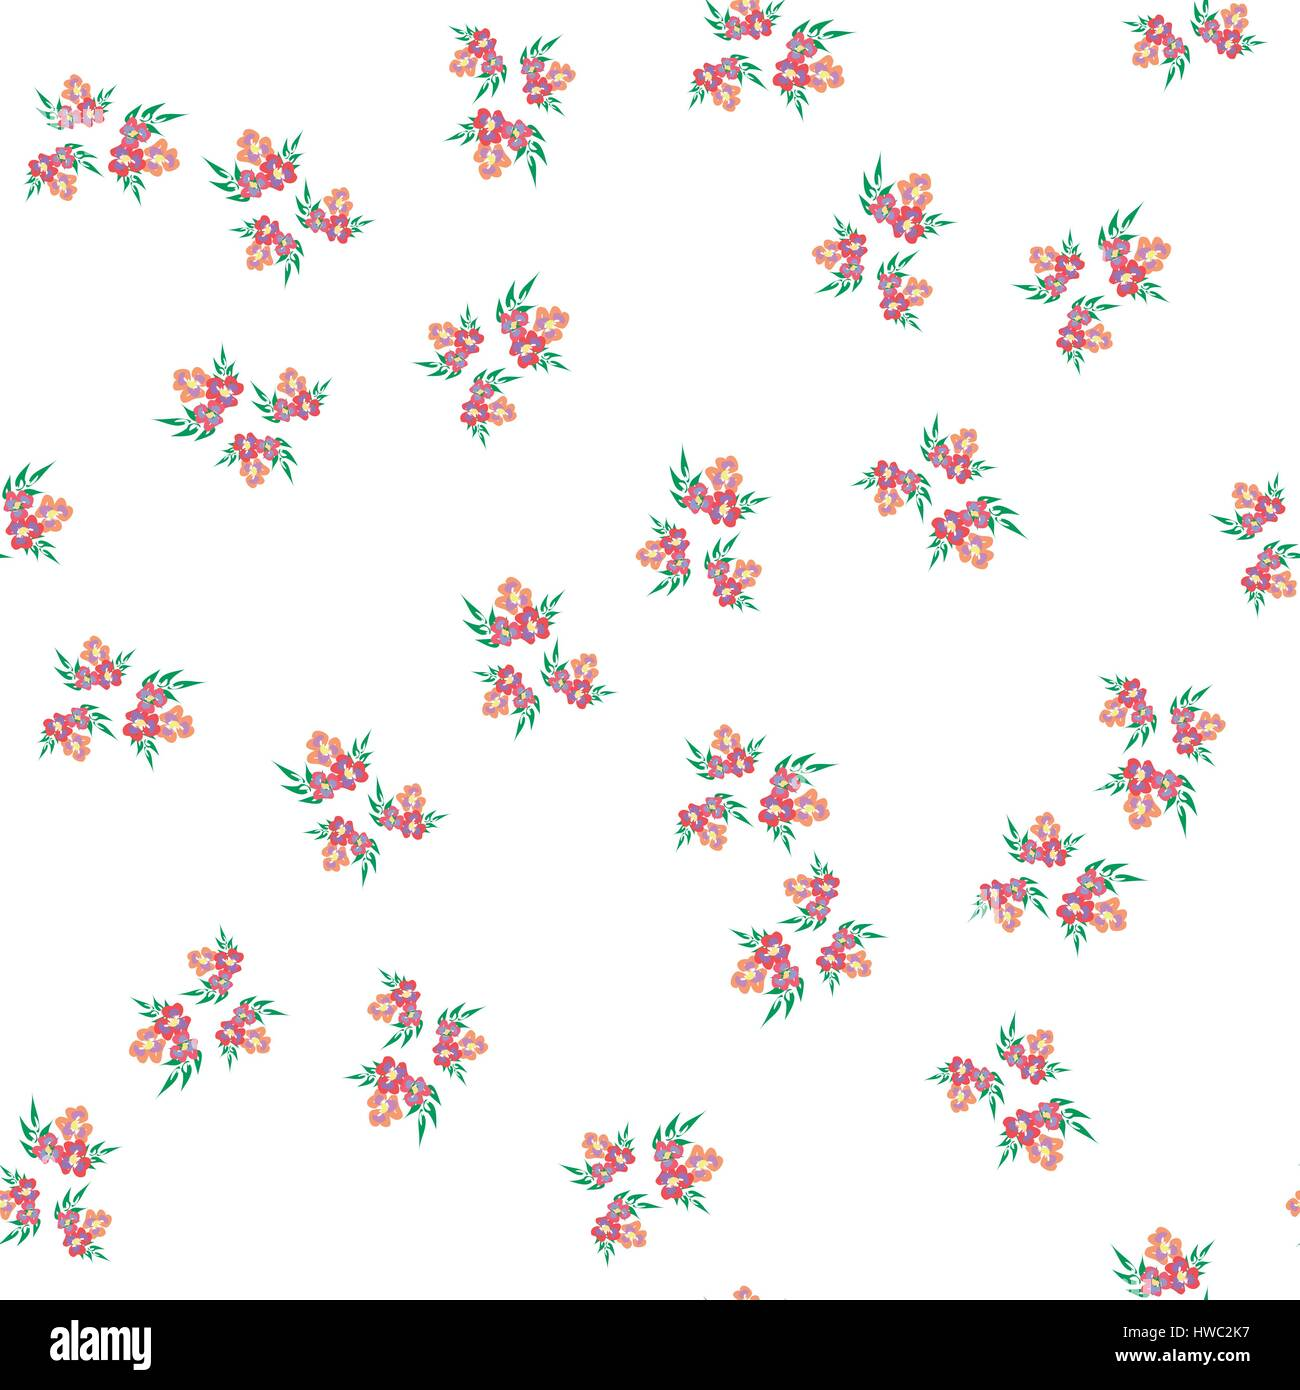 Trendy Seamless Floral Pattern In Vector Sweet Background For Textile Cotton Fabric Covers Wallpapers Print Gift Wrap And Scrapbooking